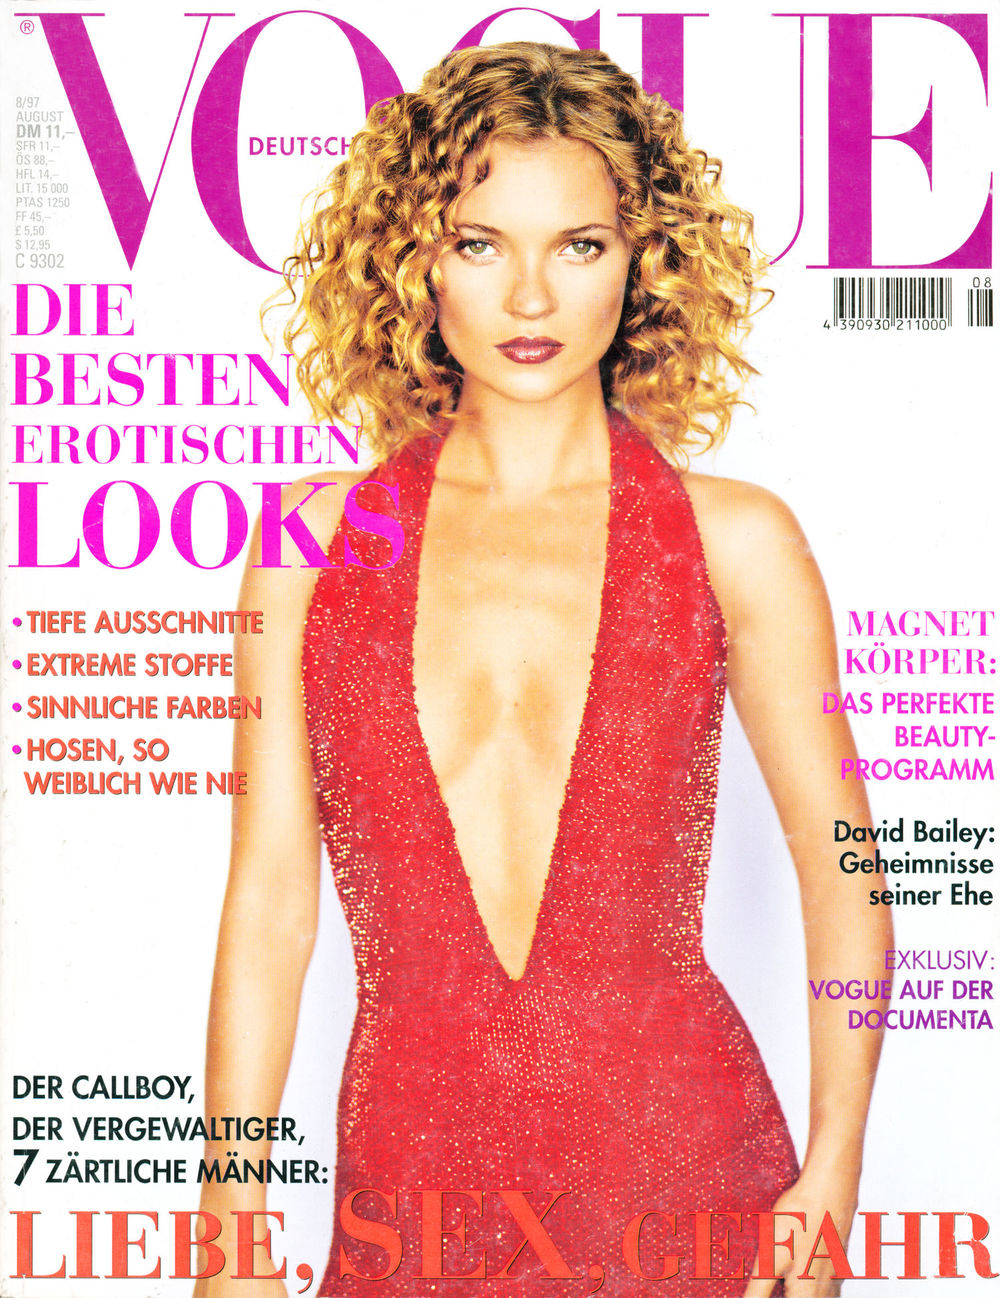 Vogue Germany August 1997